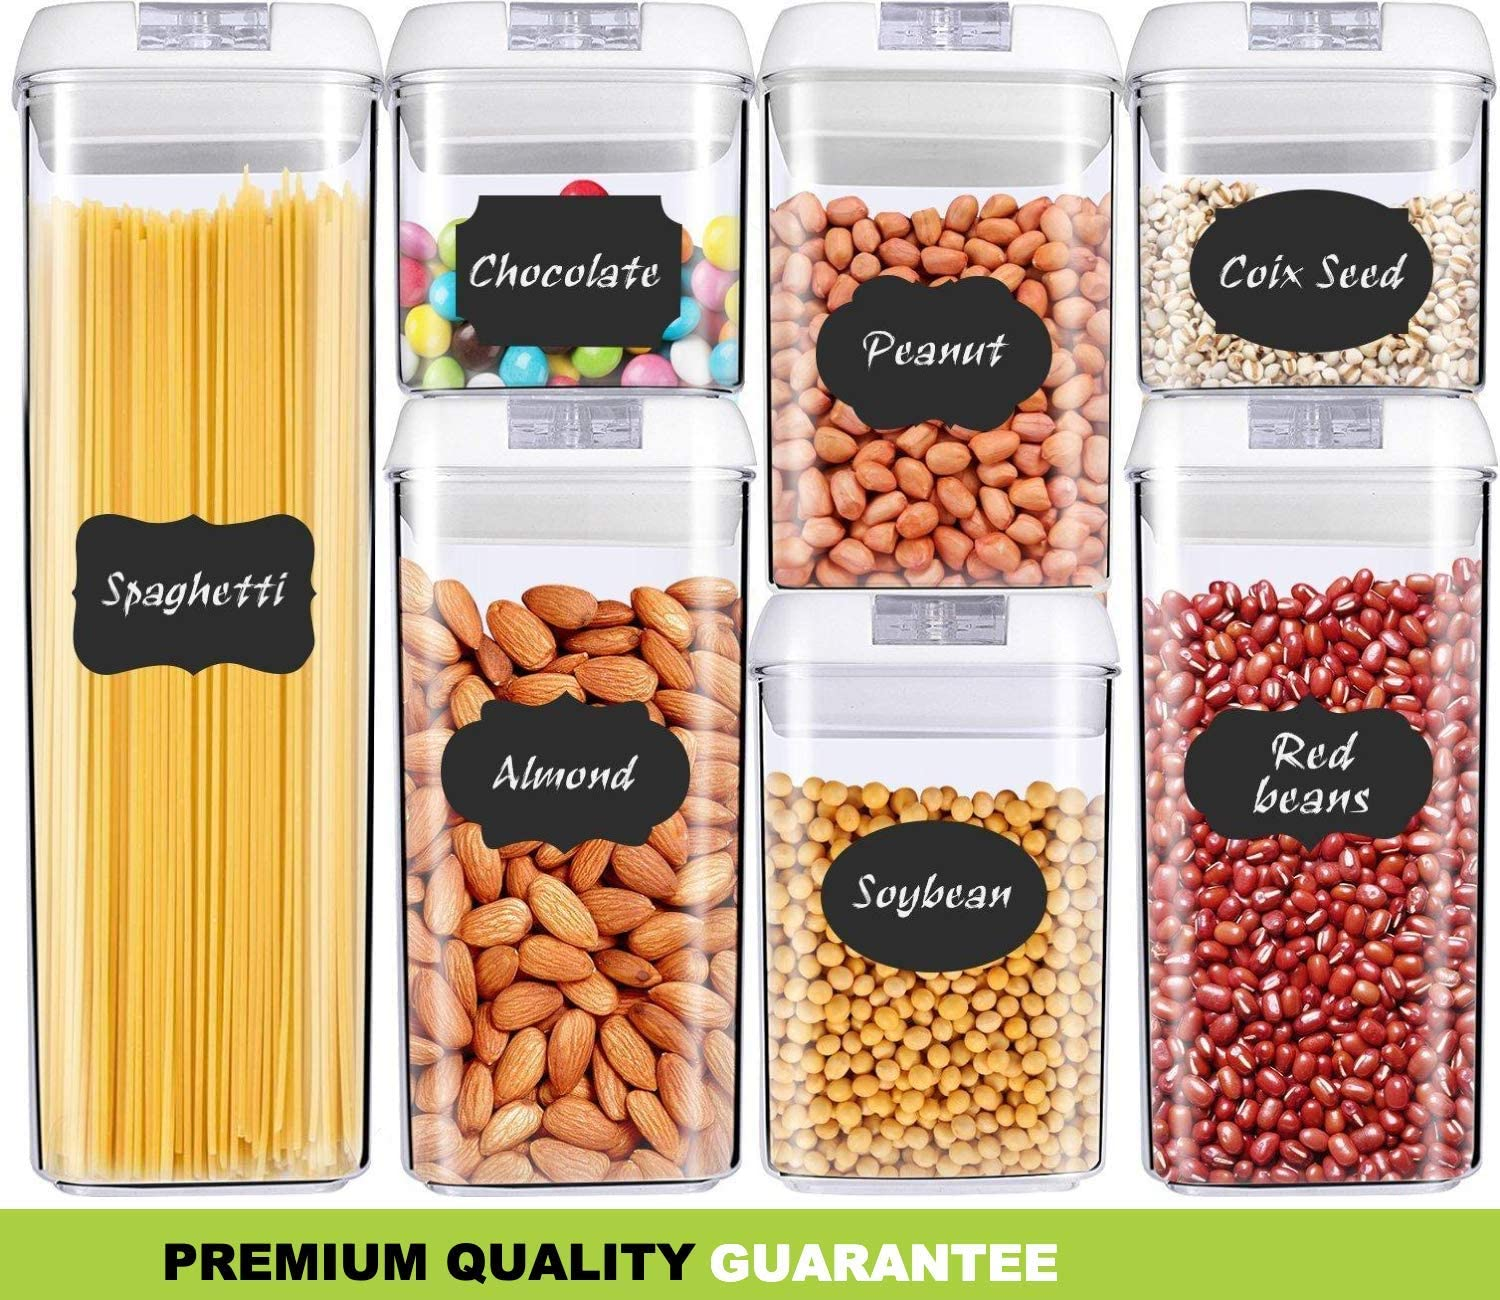 Airtight Food Storage Containers - [Upgraded] Cereal Container Set with Lids [Set of 7] - Clear BPA Free Plastic for Kitchen Pantry Organization - Bonus Labels & Marker Included - Crown Equipments